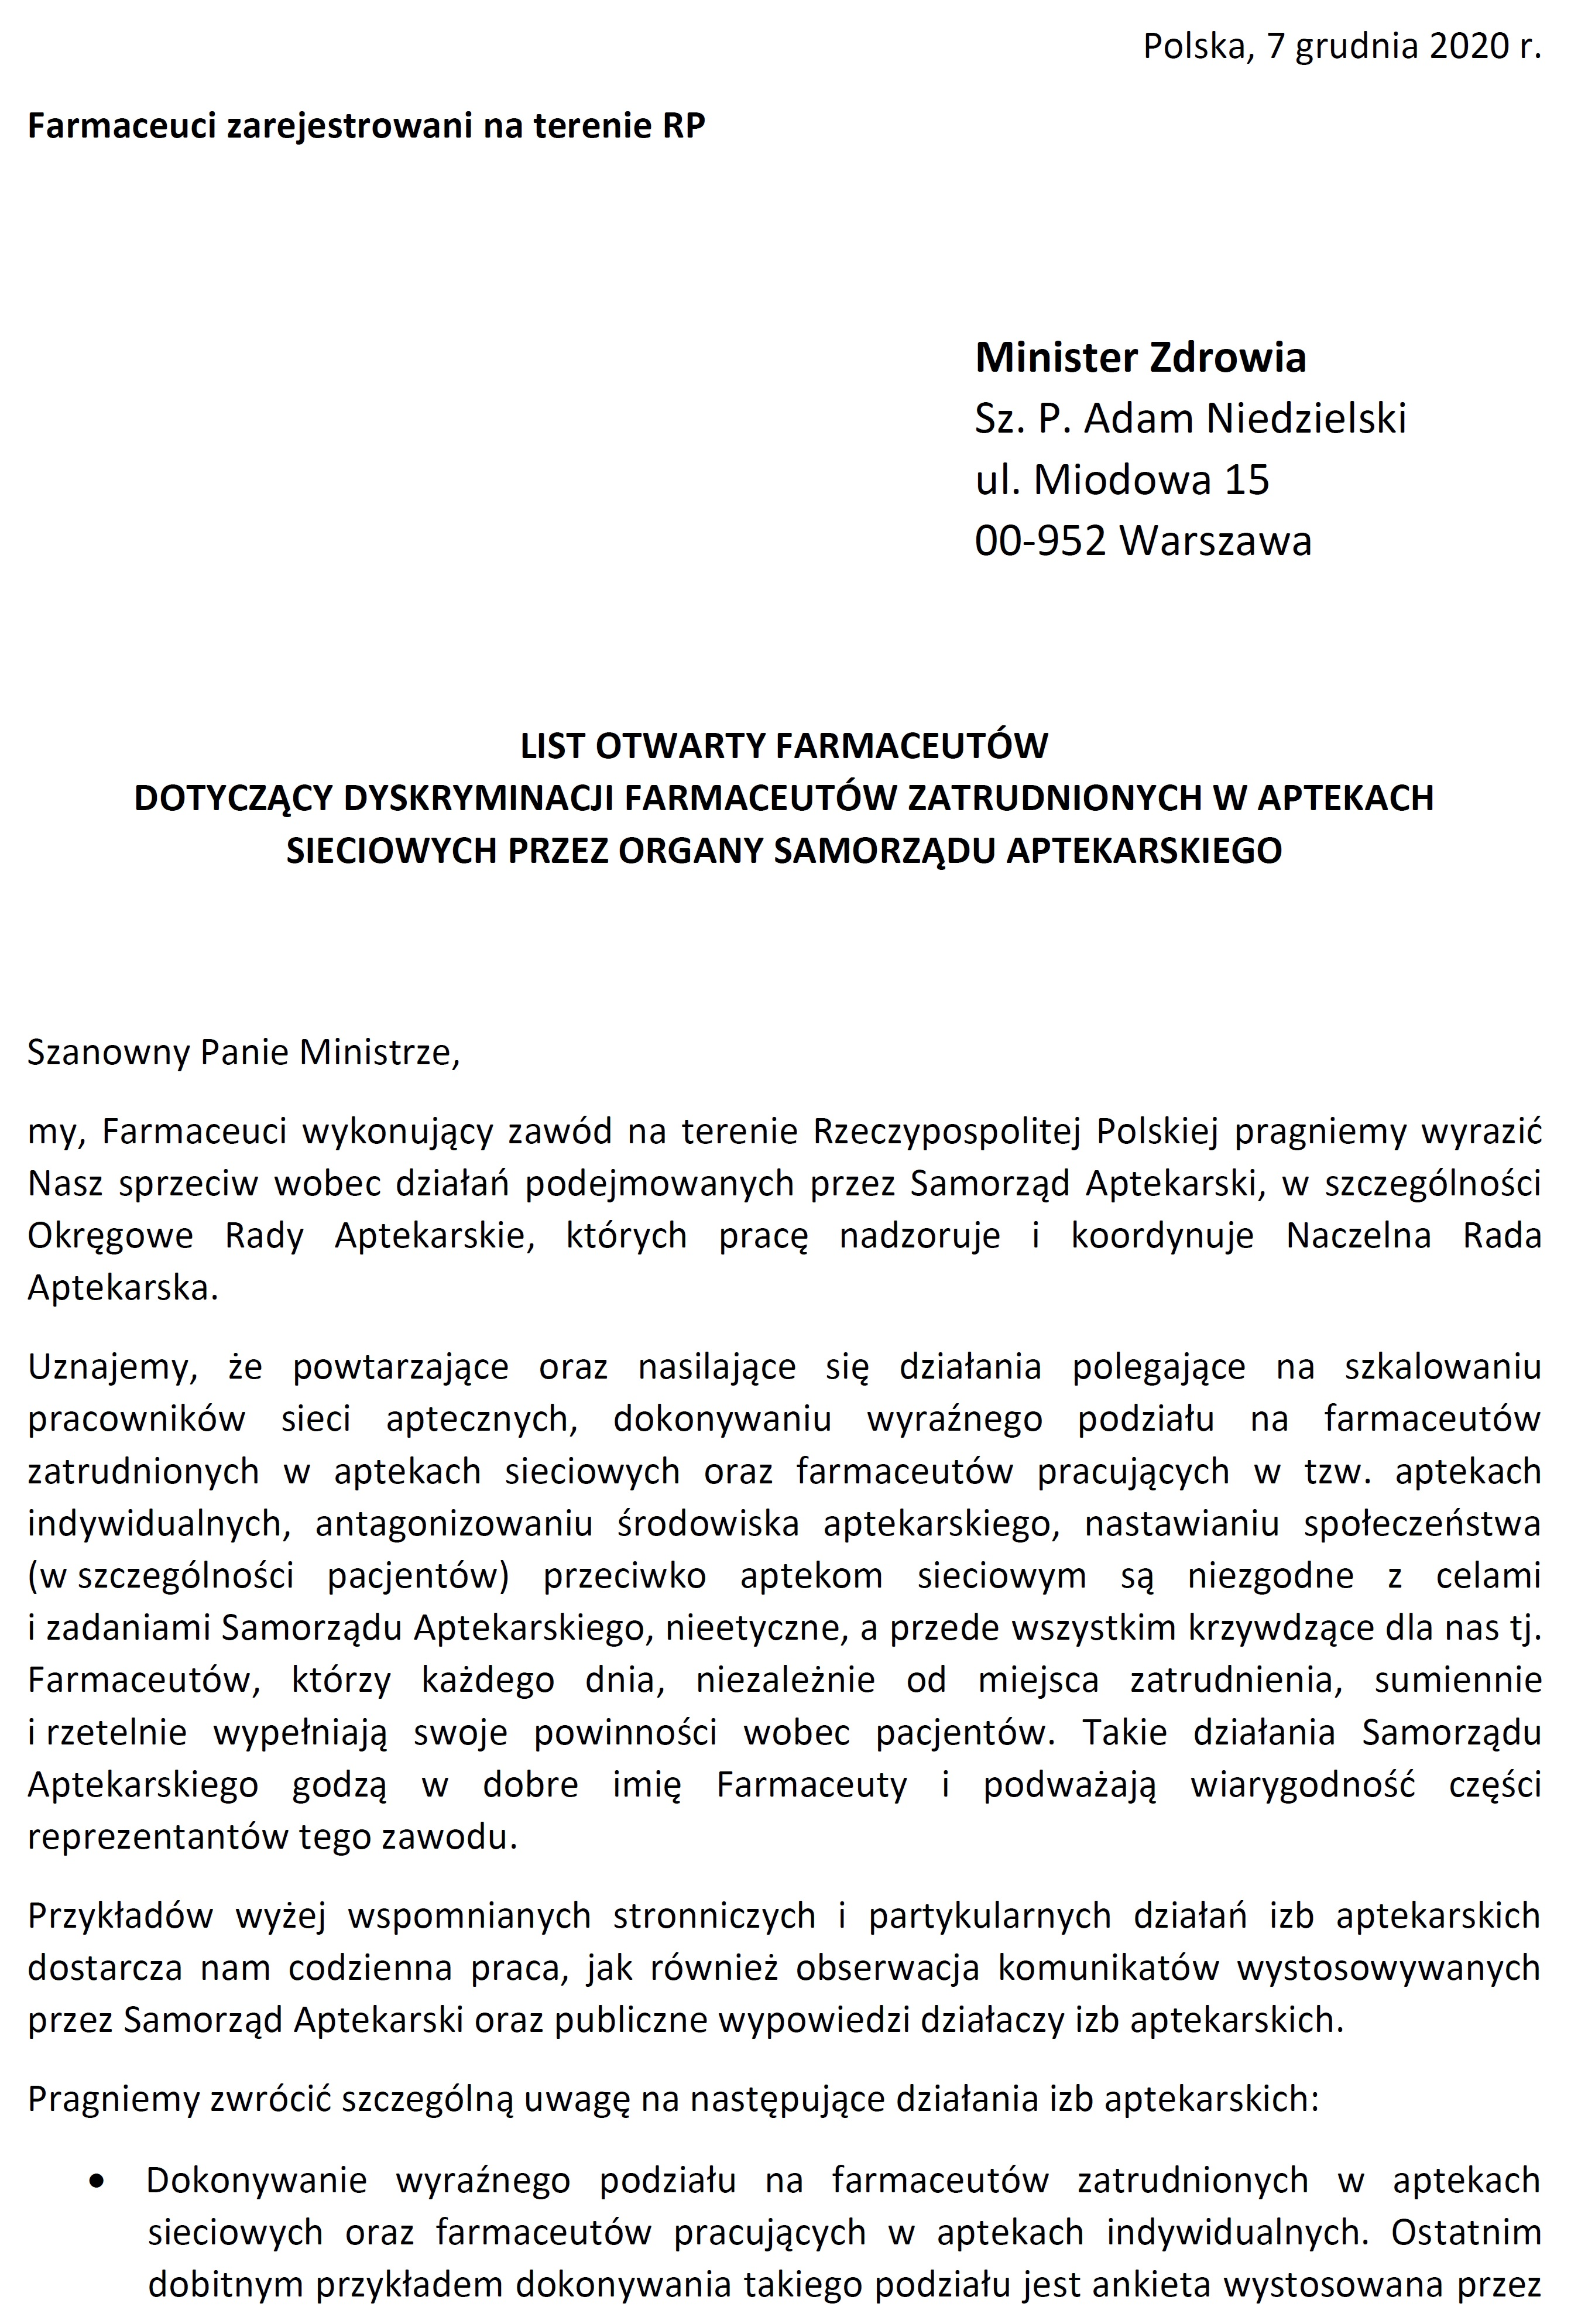 List_farmaceutów_FINAL_p1.jpg